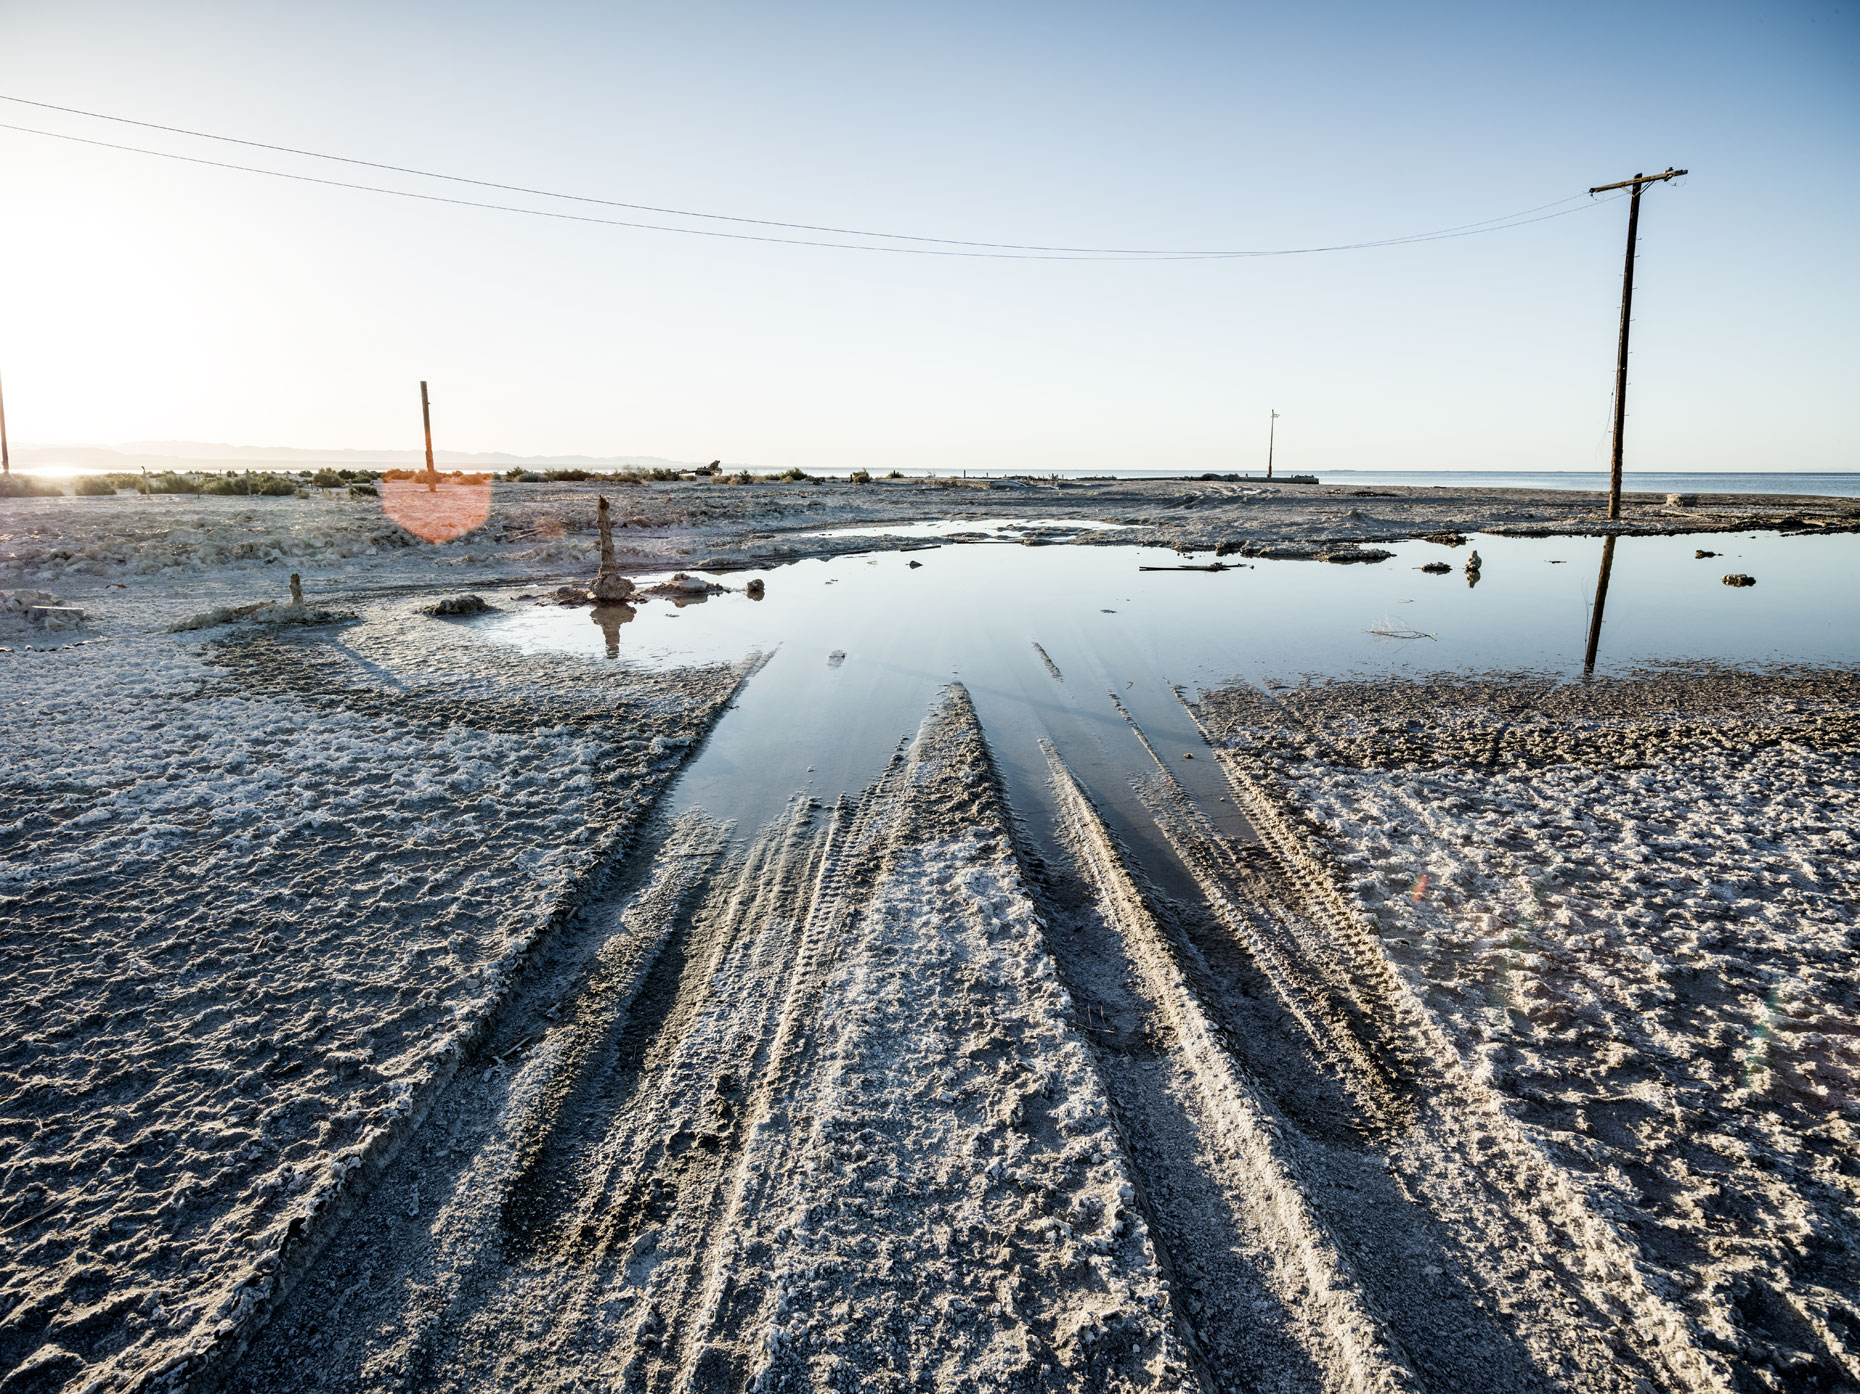 Bombay Beach puddle of water with tire tracks in the sand leading into the Salton Sea